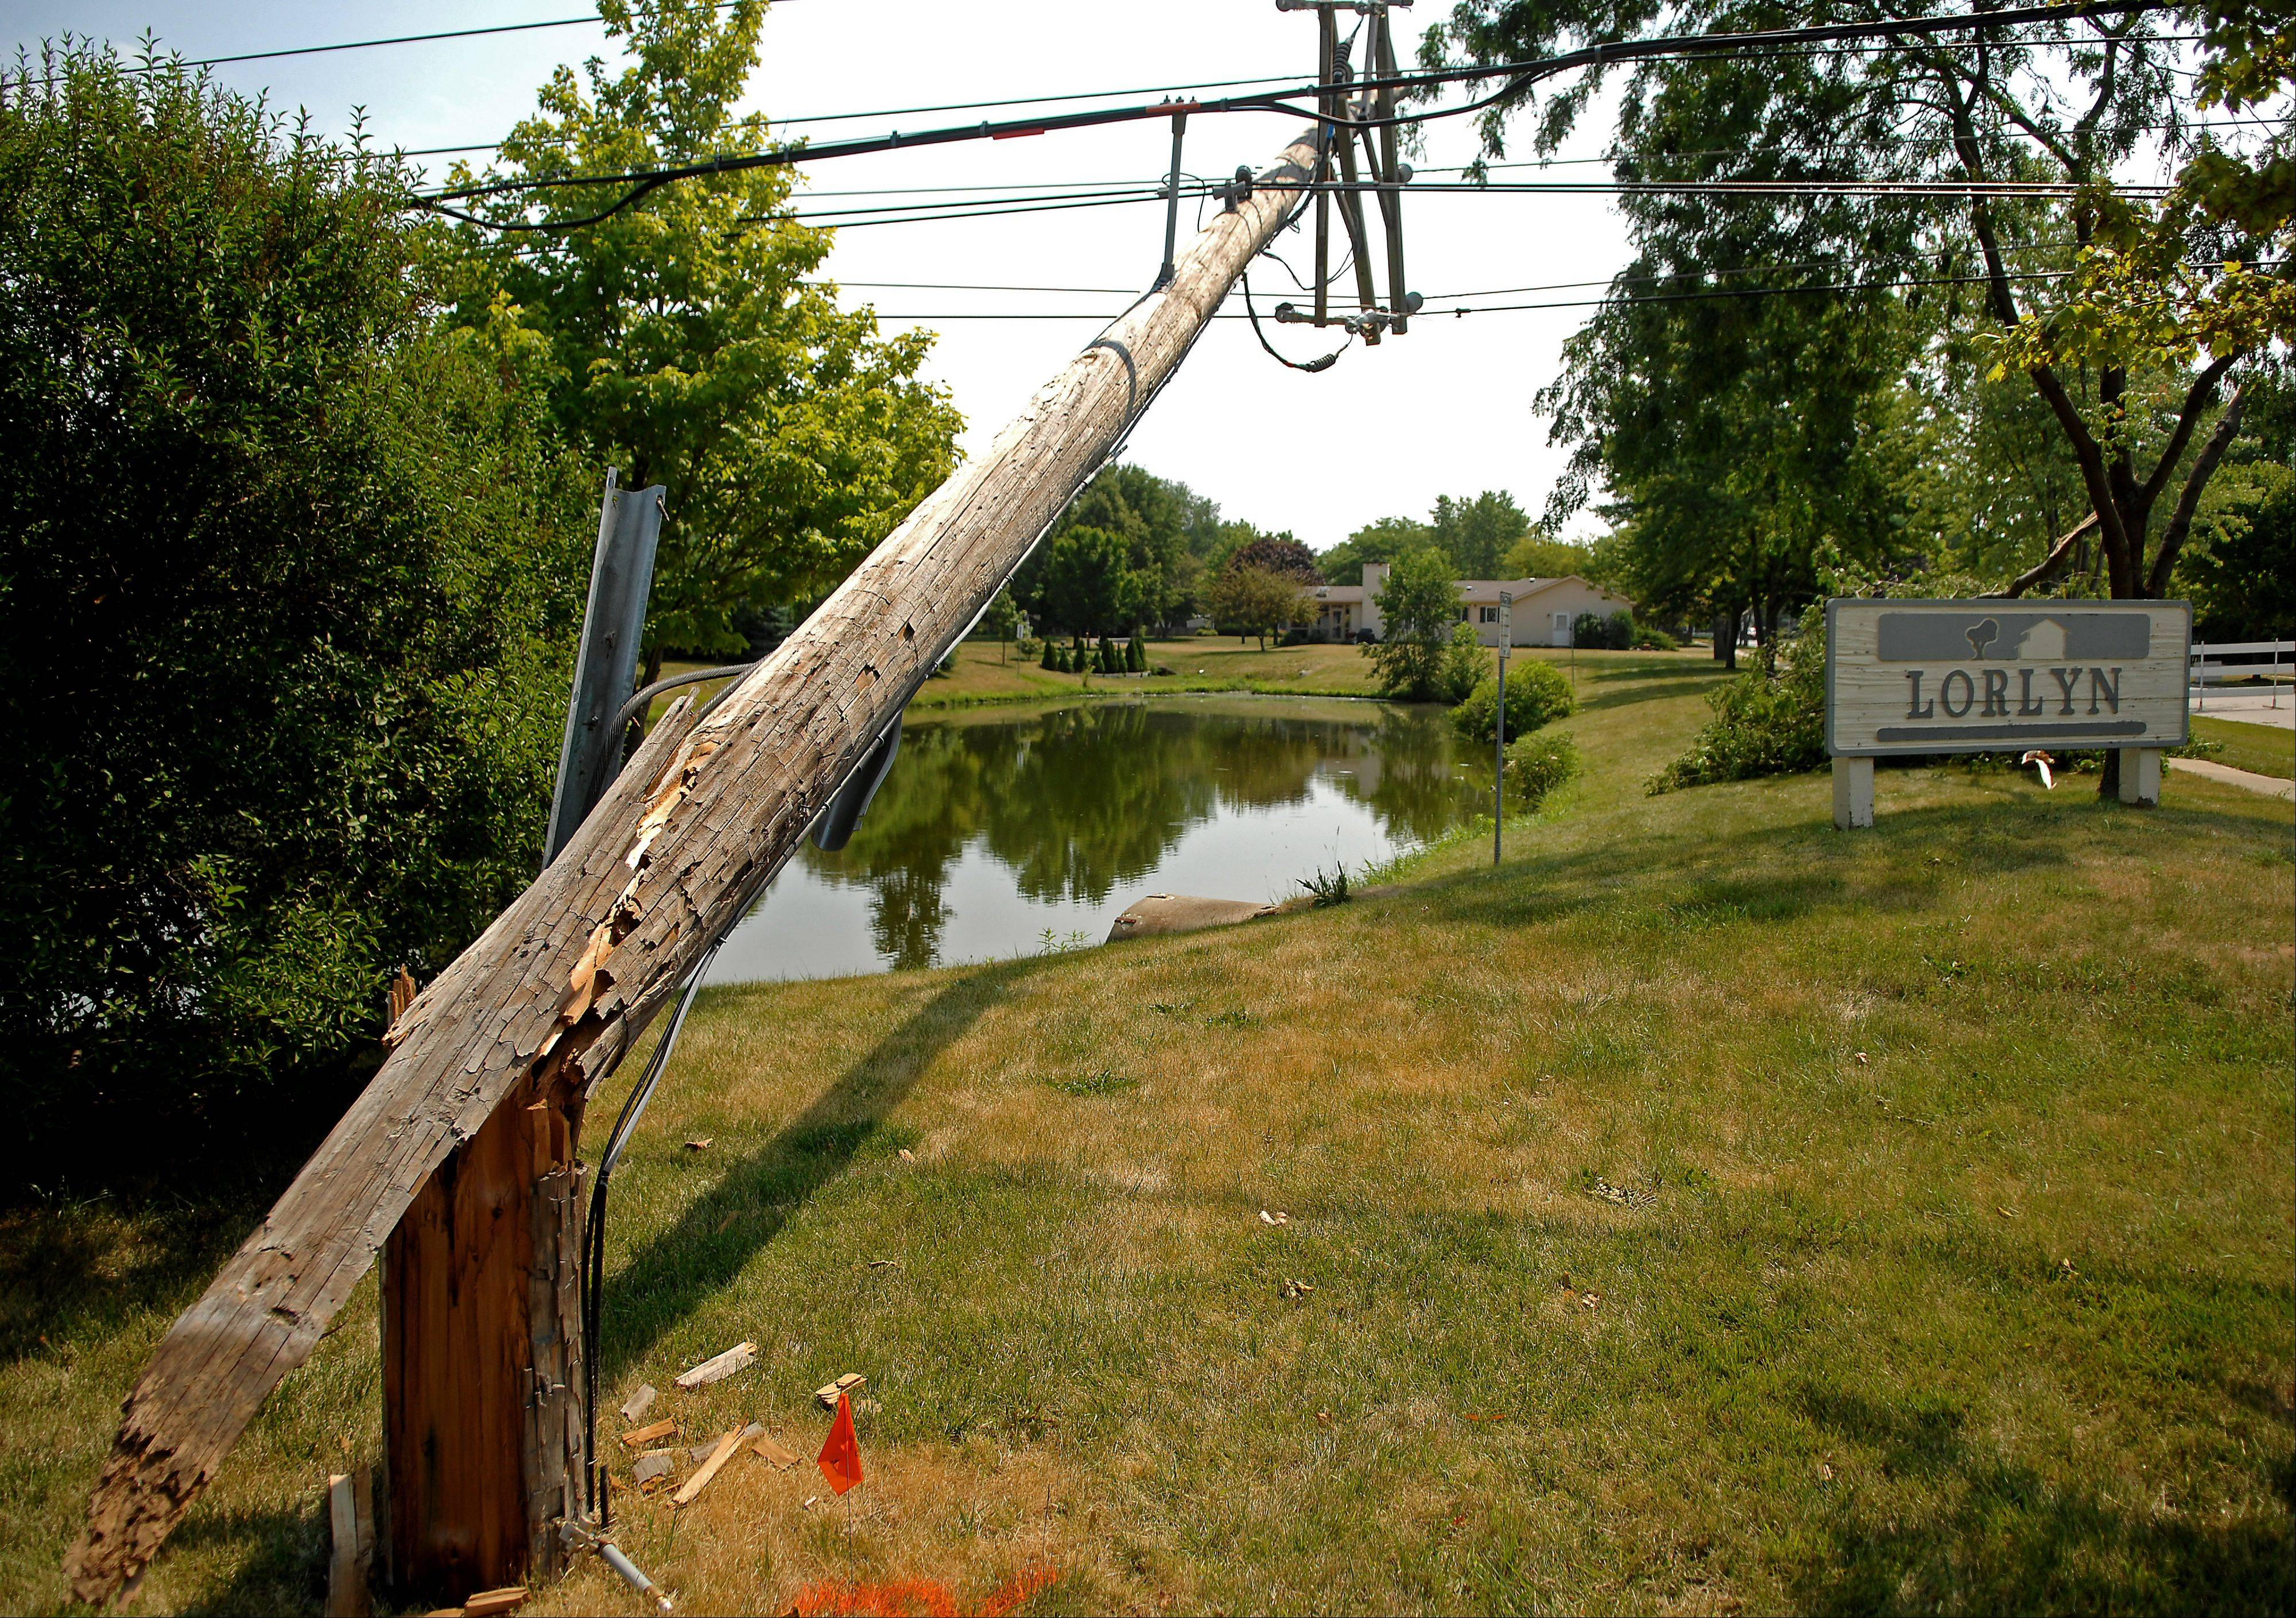 Batavia discovered last year that five of the six utility poles on Western Avenue brought down in a storm in July 2012 had significant rot. It prompted officials to order a check of all 2,600 of the city's wooden utility poles.